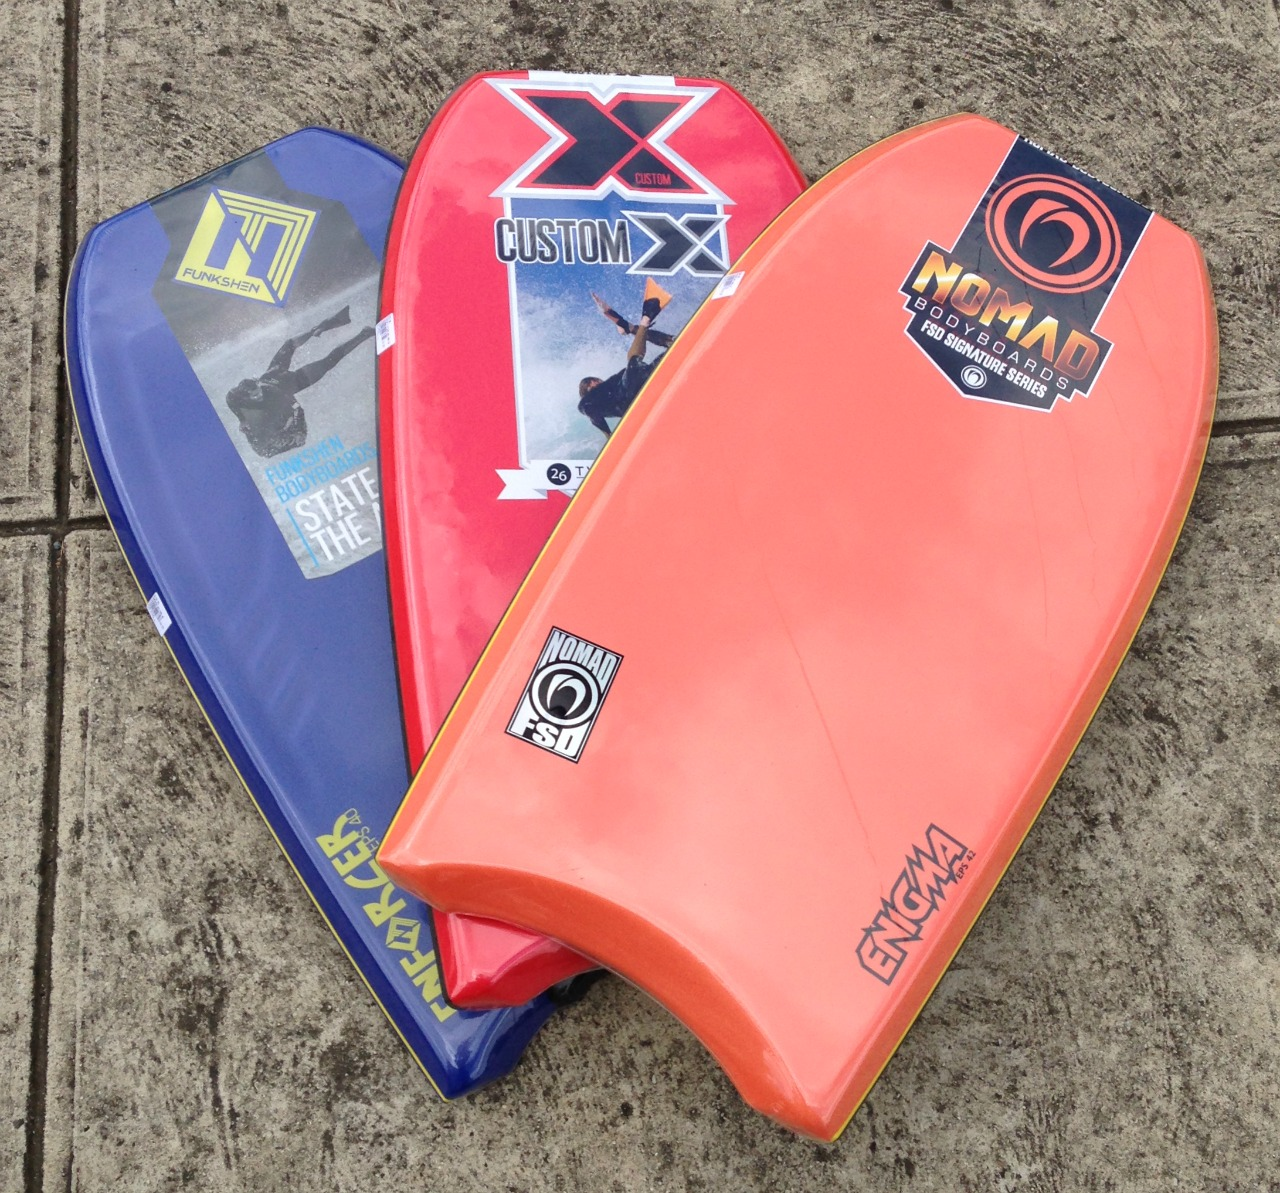 Fully stocked with Bodyboards and accessories